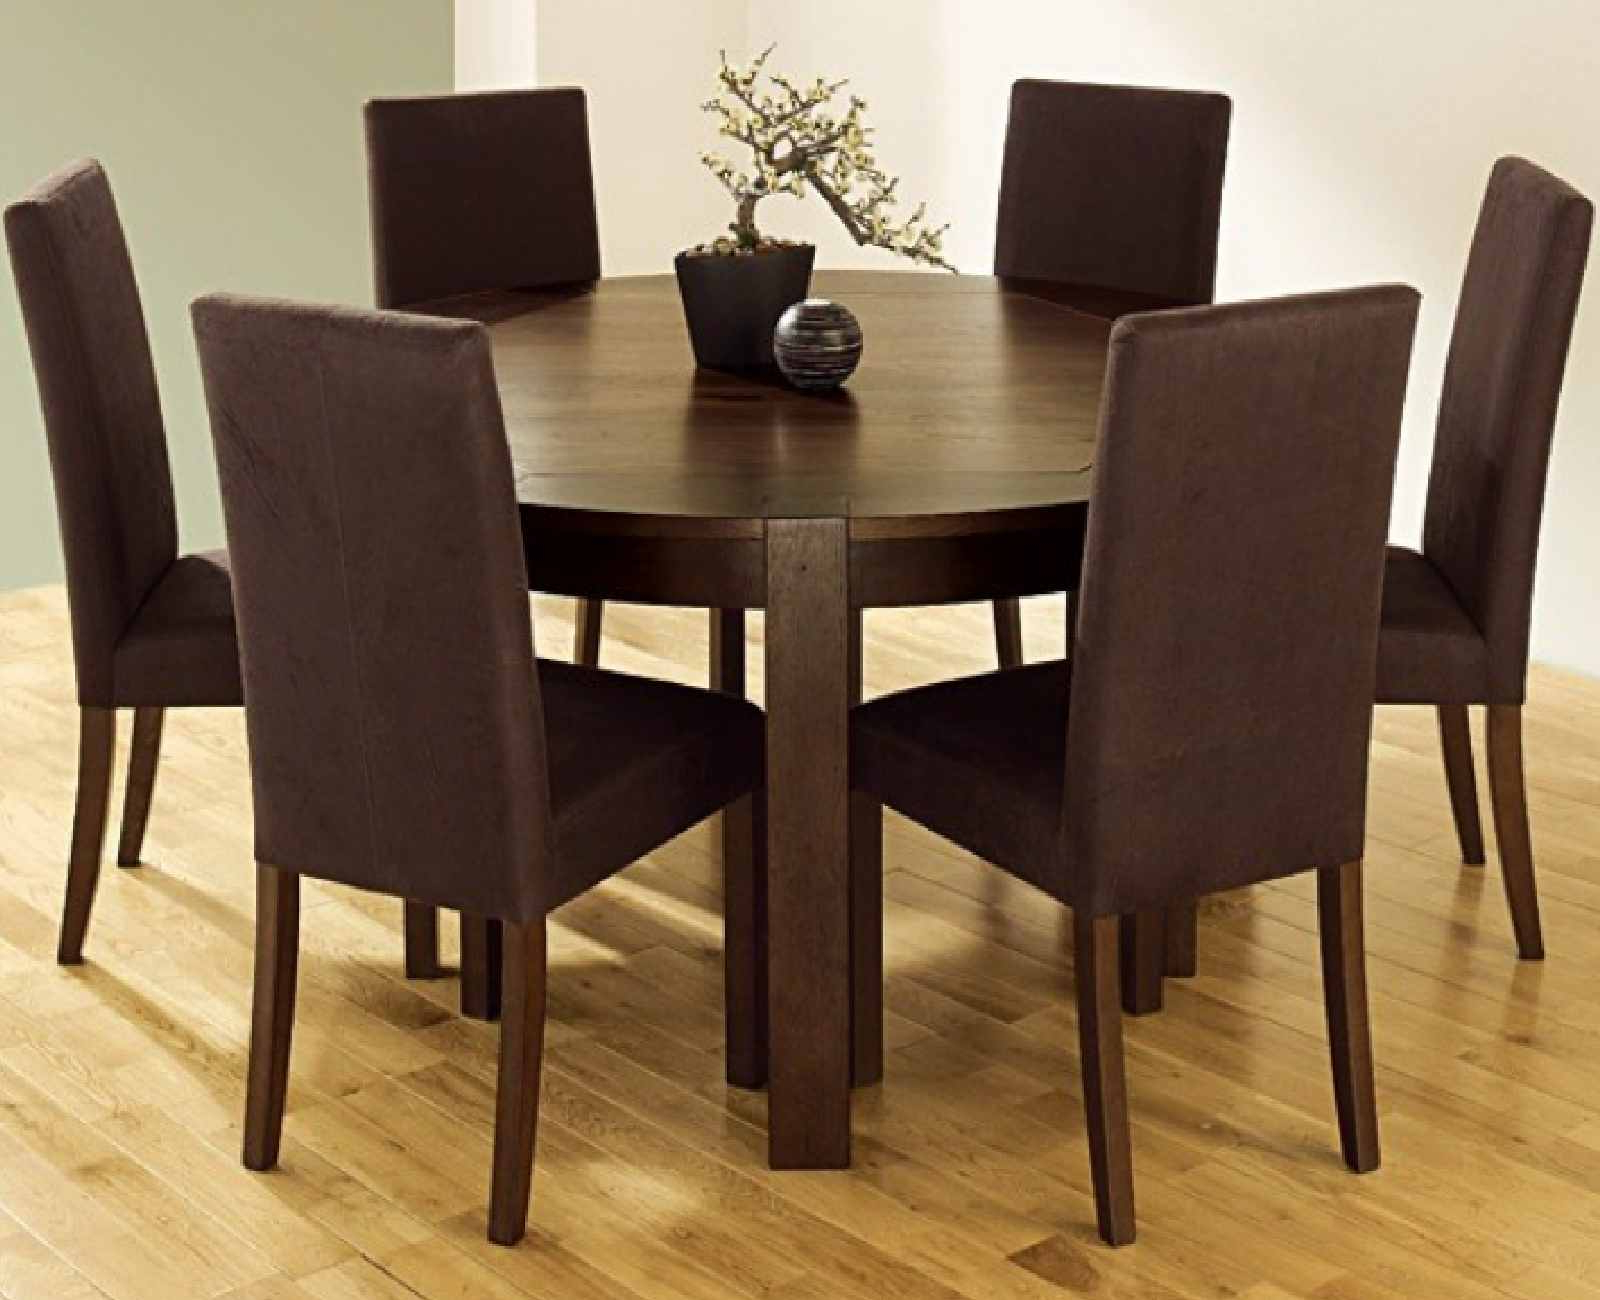 Lonon 3 Piece Dining Sets Inside Most Recently Released 3 Piece Round Dining Set (View 14 of 25)